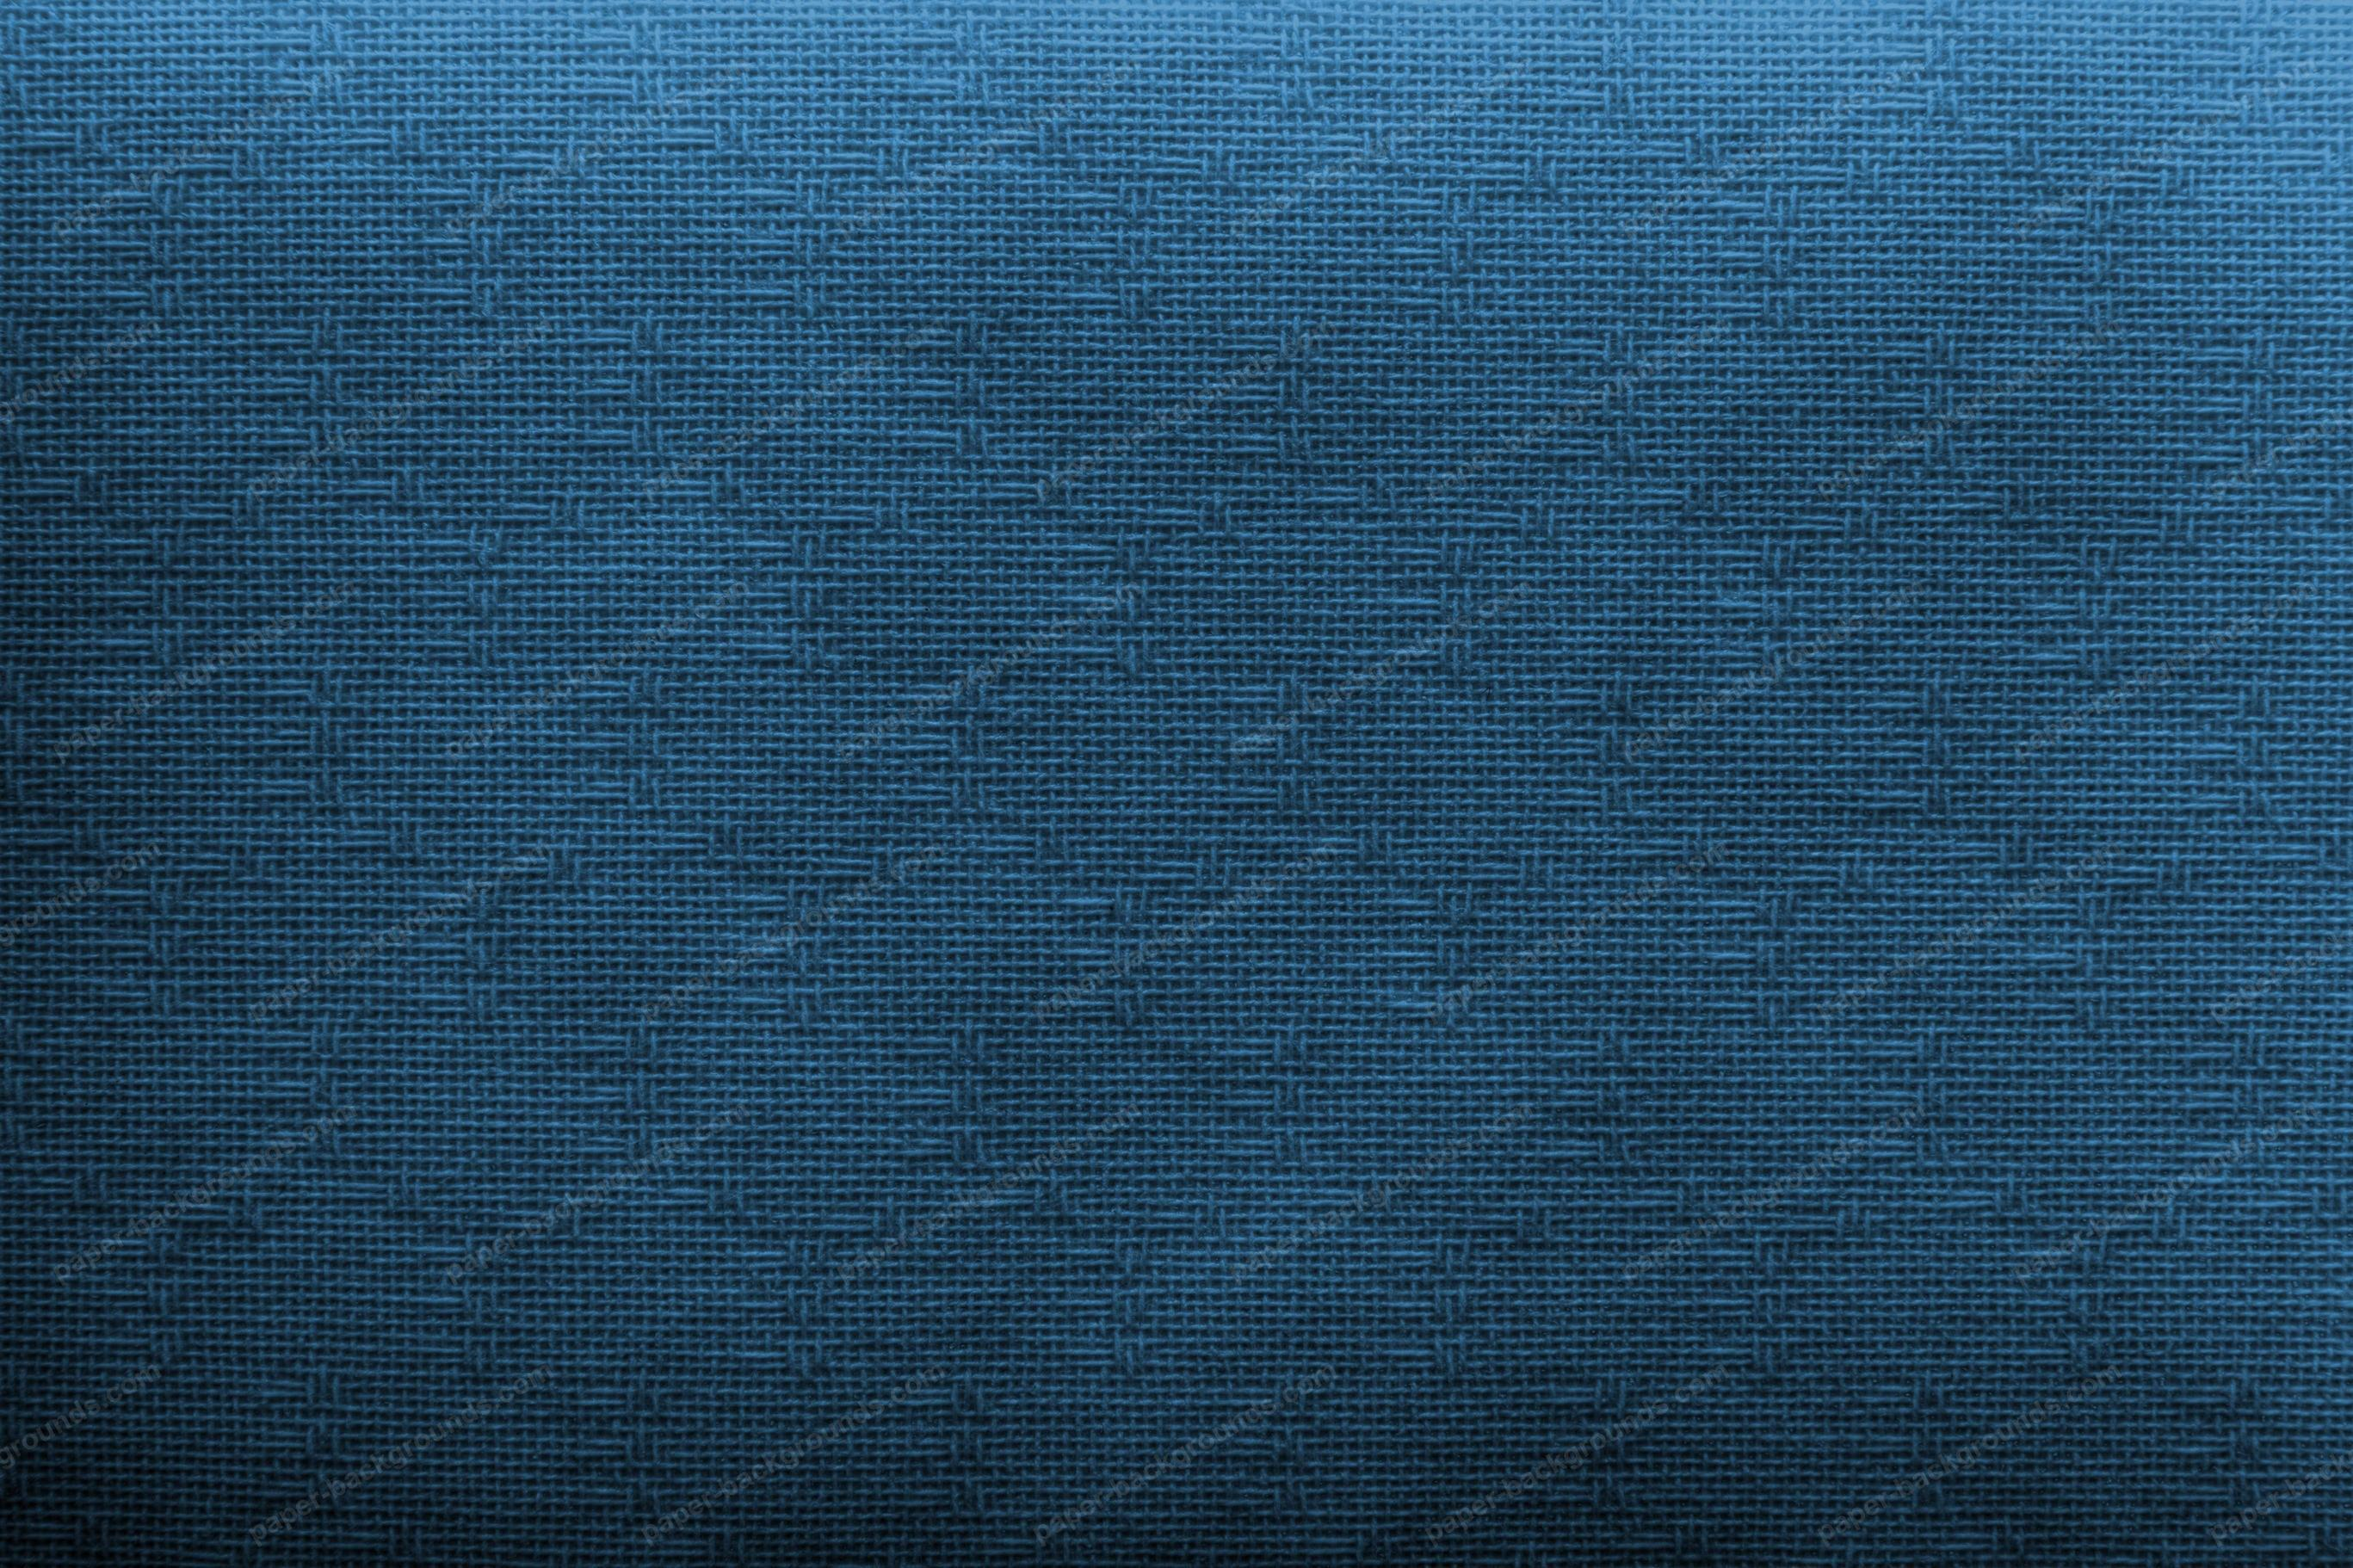 Dark Blue Canvas Texture Backgrounds